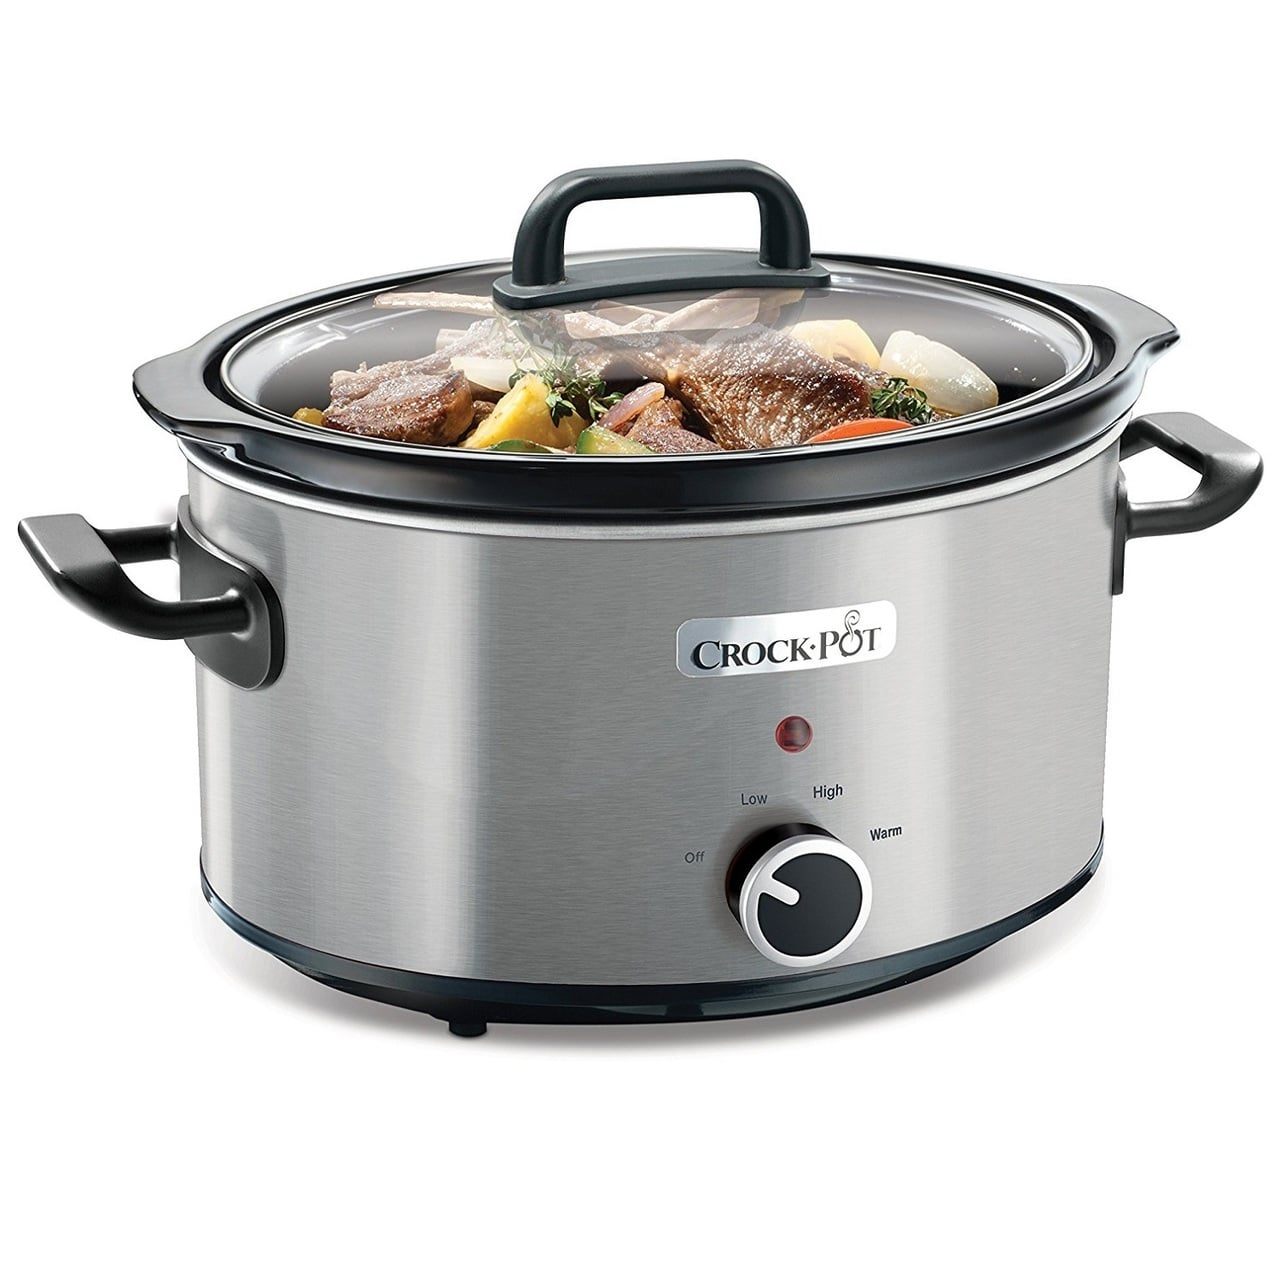 CROCK-POT SLOW COOKER STEEL 3.5L (For 4)